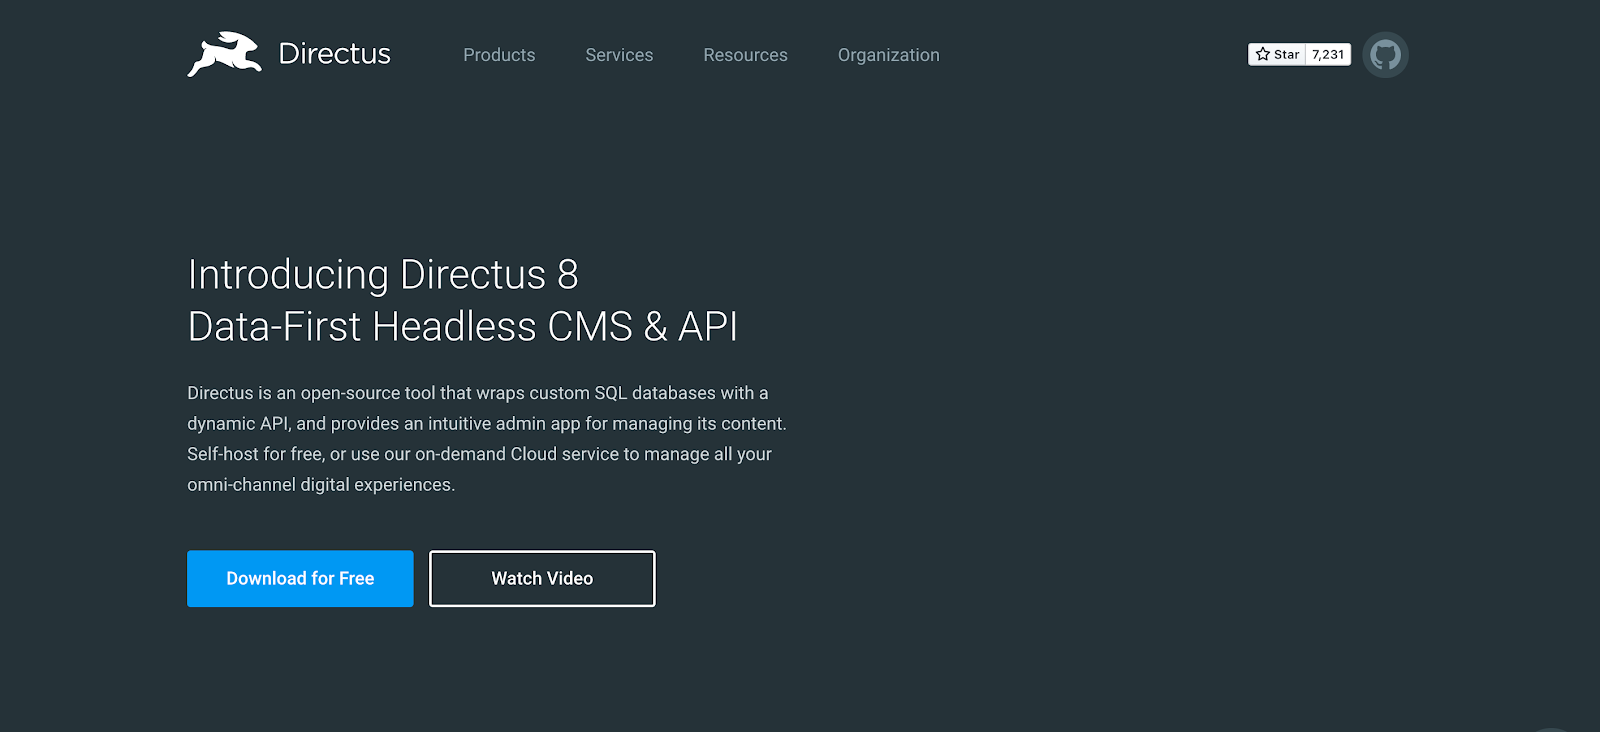 SQL based Directus is a data first headless CMS and API that allows self-hosting